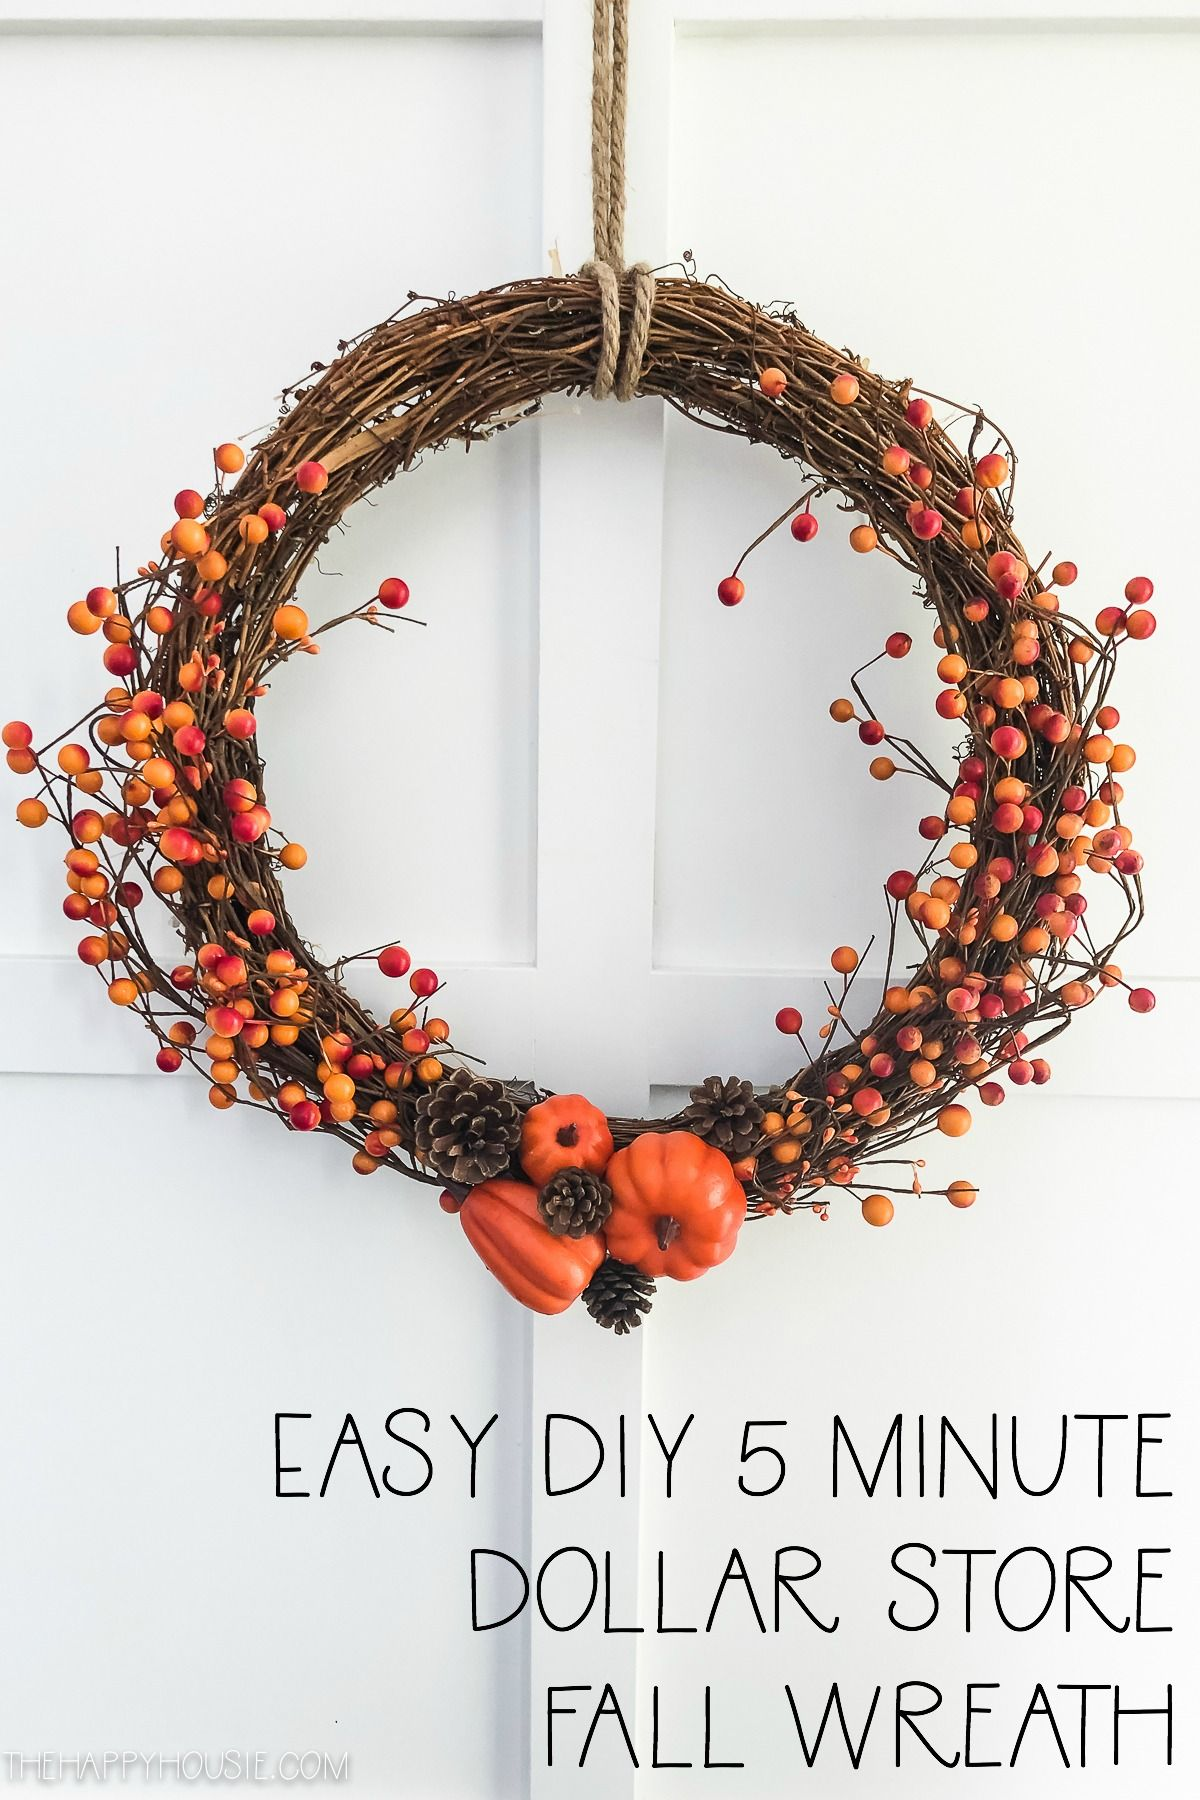 Easy DIY Dollar Store Fall Berry Wreath DIY #autumnseason